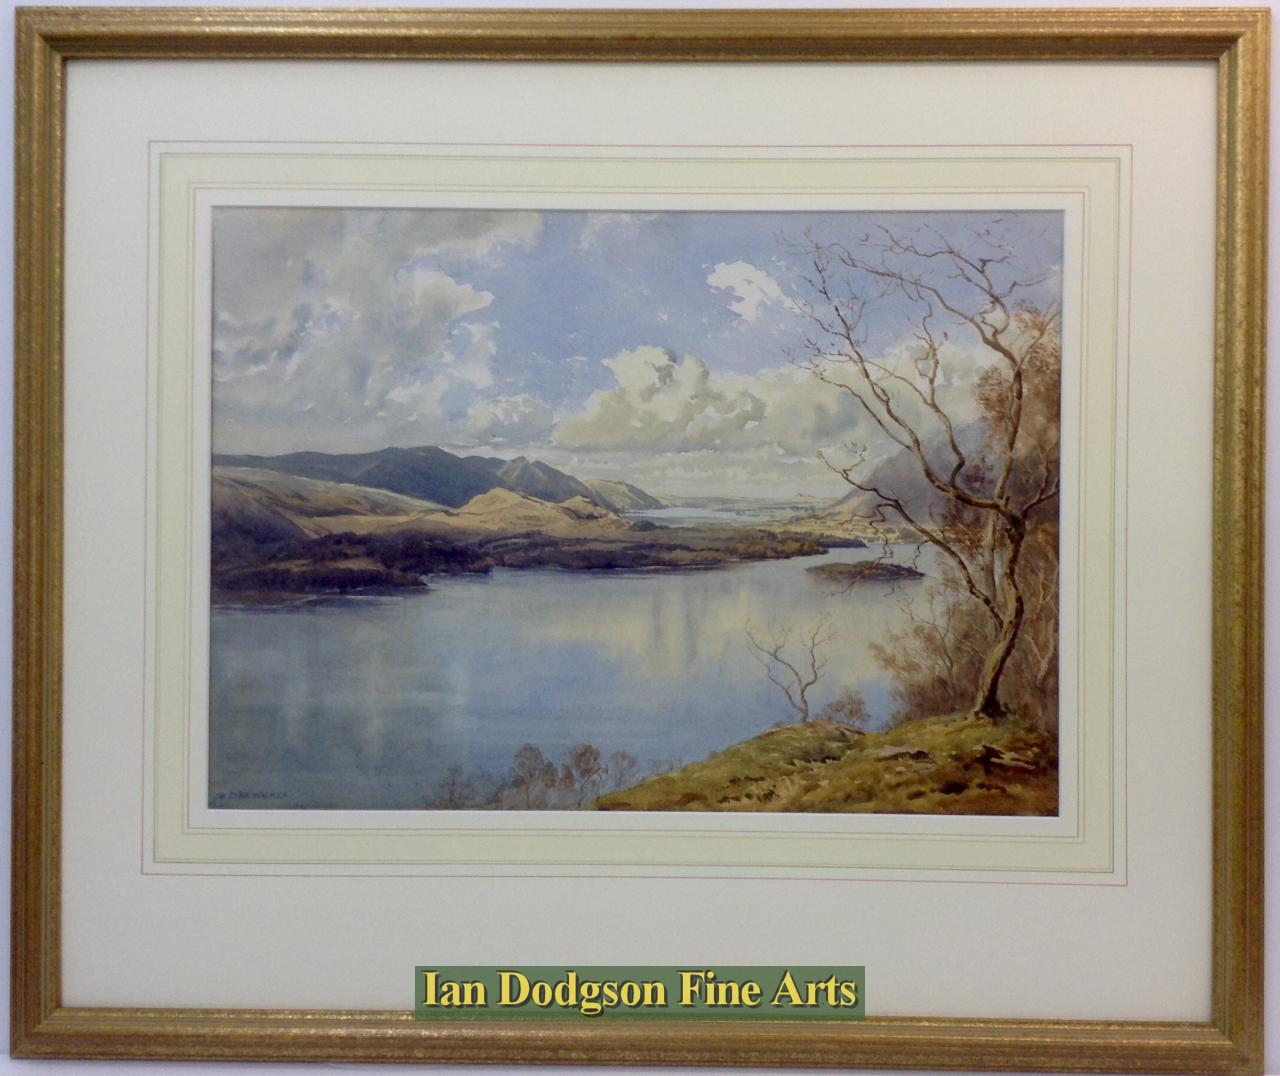 Bernard Eyre Walker A.R.E.,S.G.A. - Derwent Water and Bassenthwaite Lake